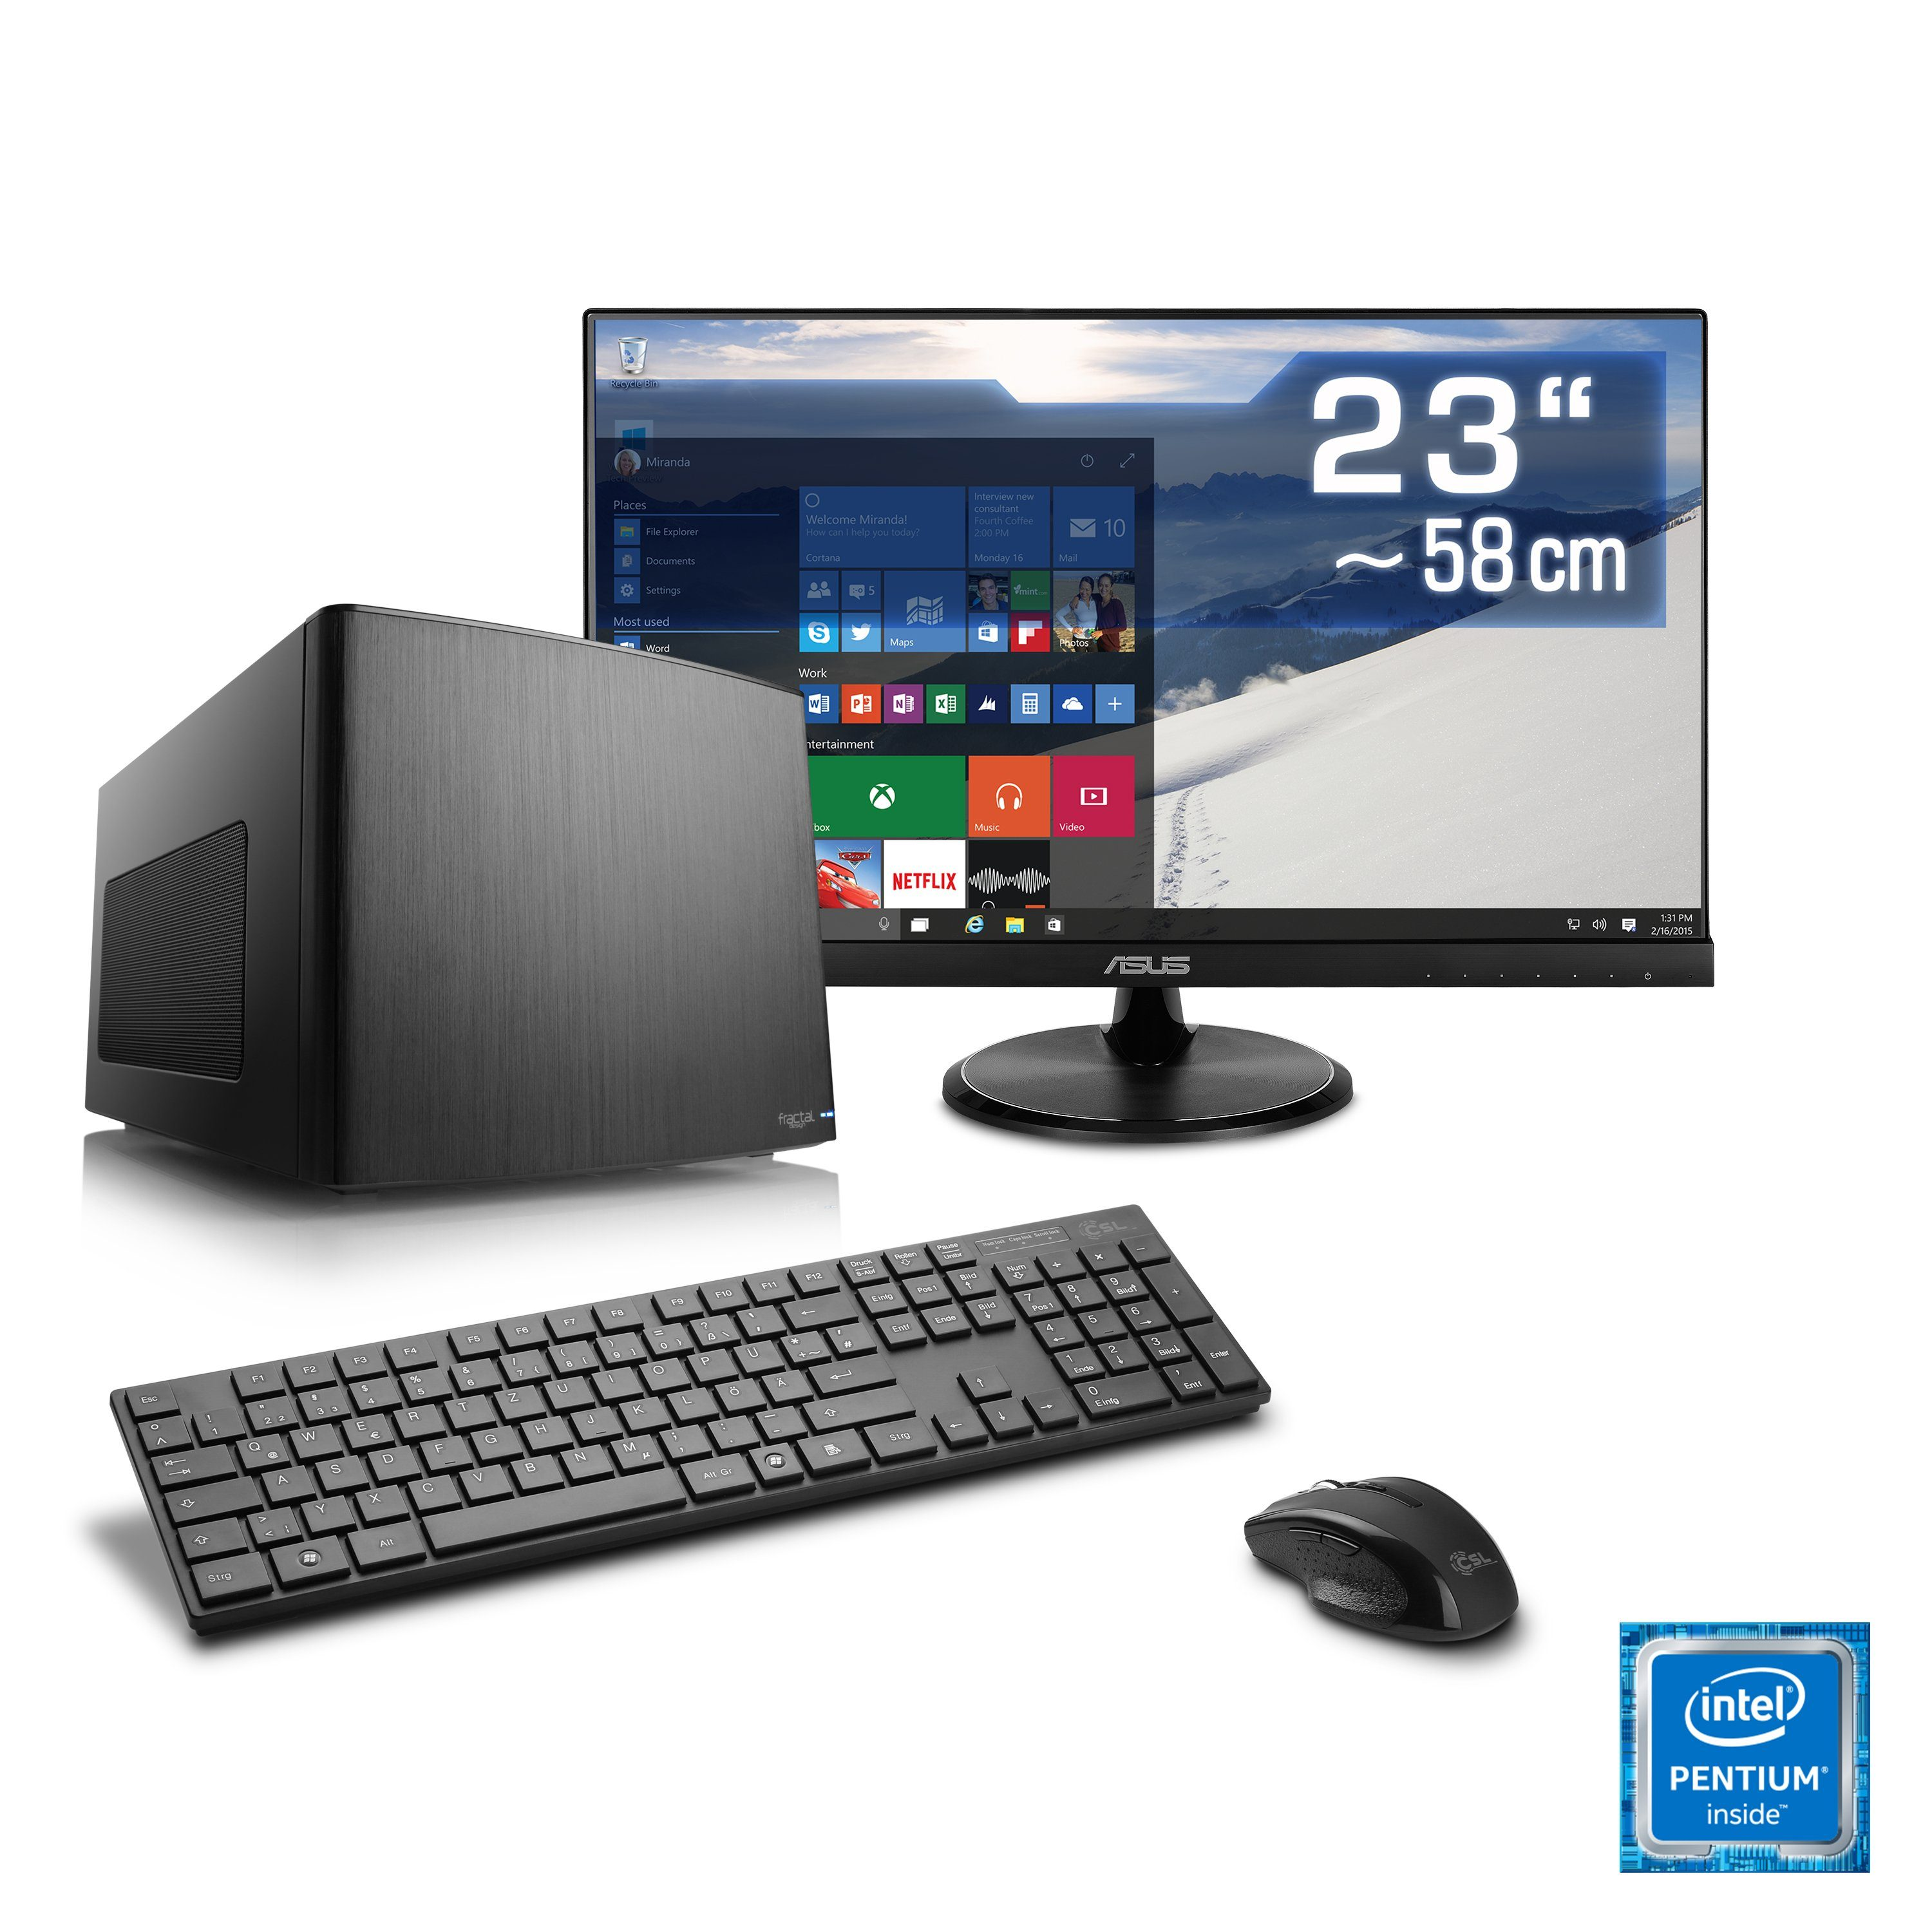 CSL Mini-ITX PC Set | Pentium G4560 | HD 610 | 8 GB DDR4 | SSD »Multimedia Box T1894 Windows 10«